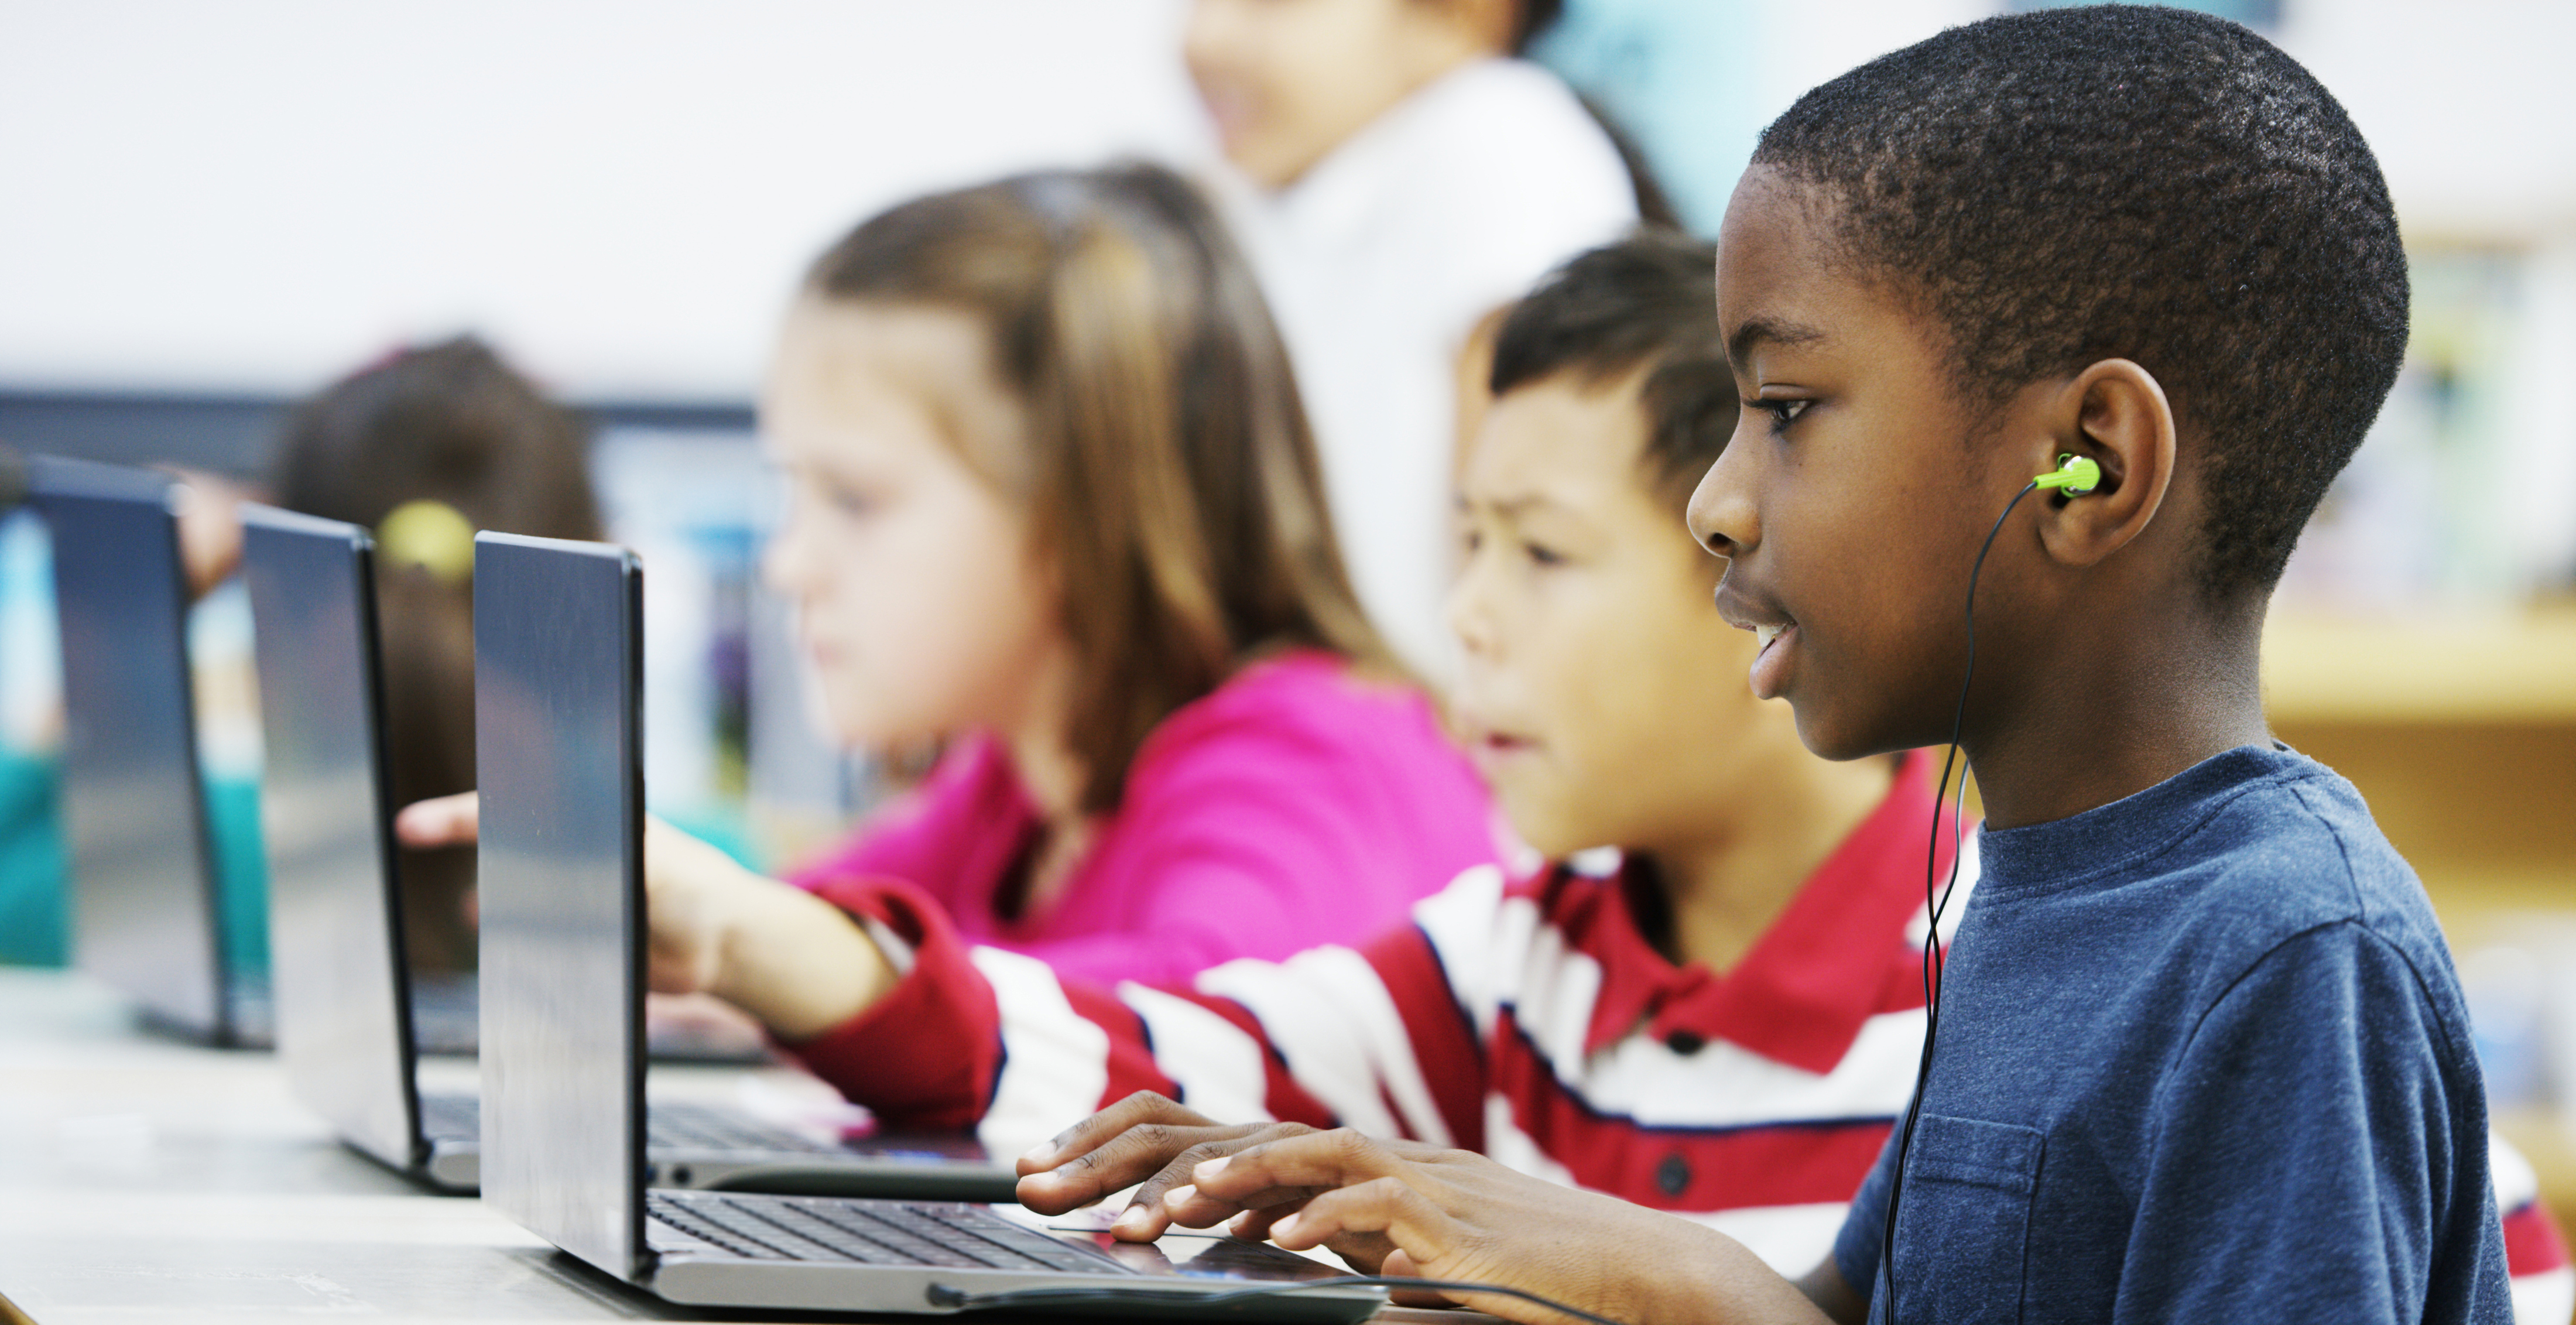 image of students on computers